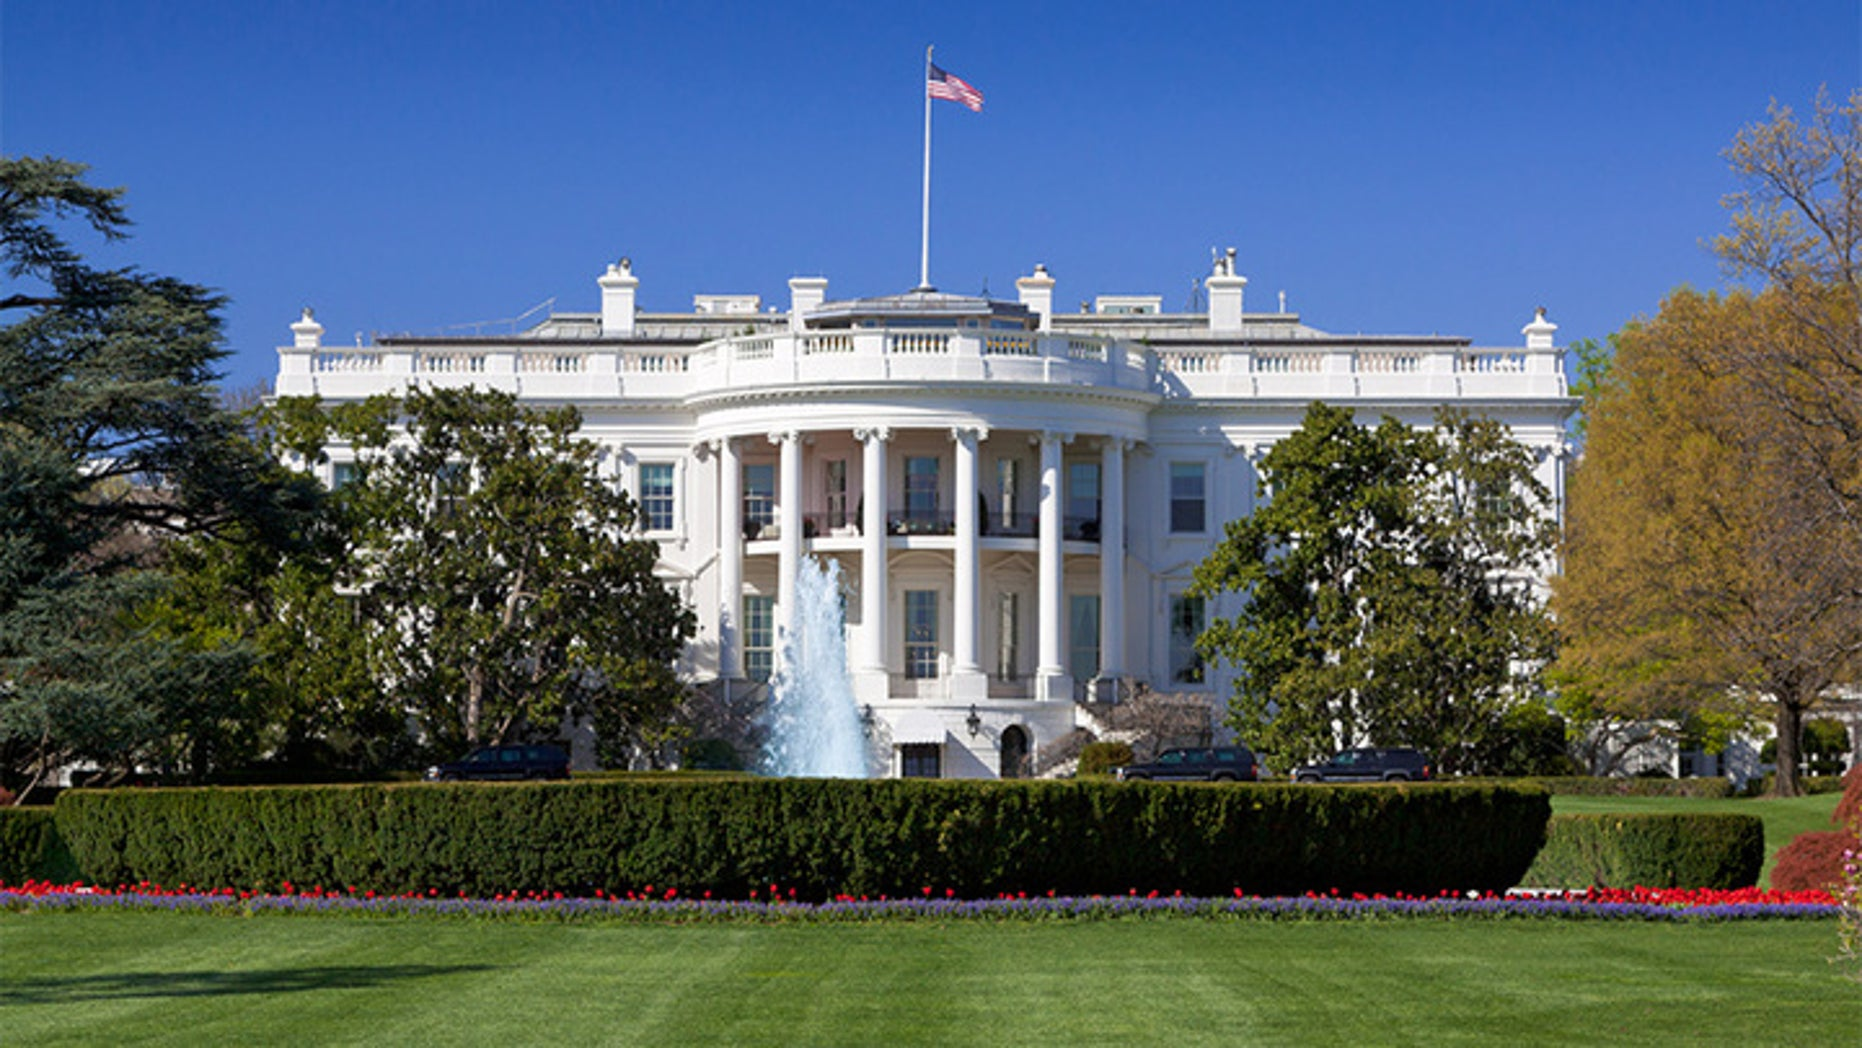 Work orders from the White House include requests to take care of mice, ants and cockroaches.